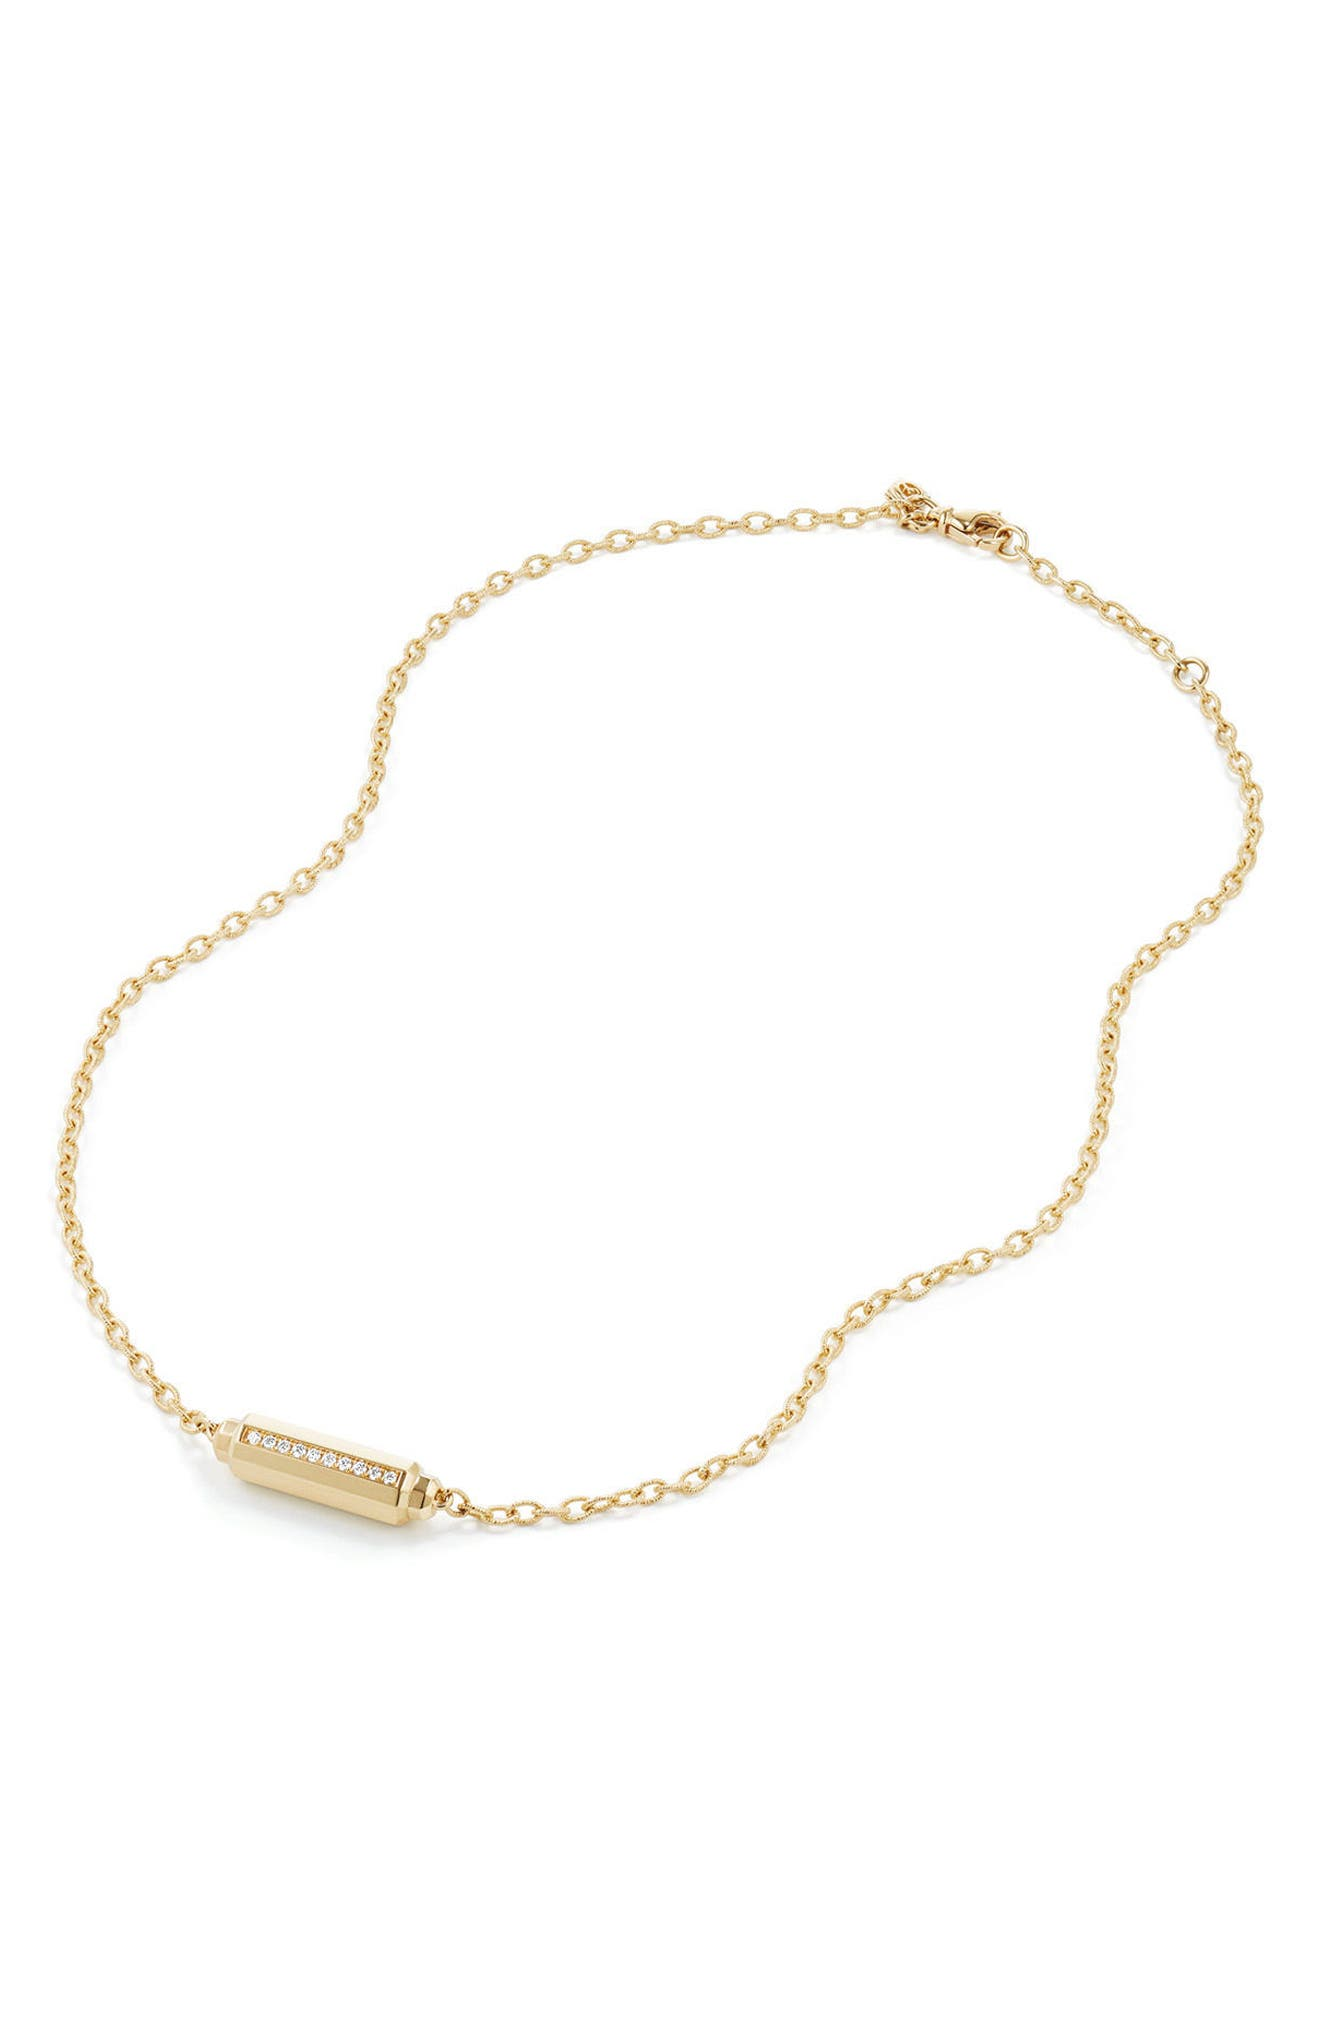 Barrels Single Station Necklace with Diamonds in 18K Gold,                             Alternate thumbnail 2, color,                             YELLOW GOLD